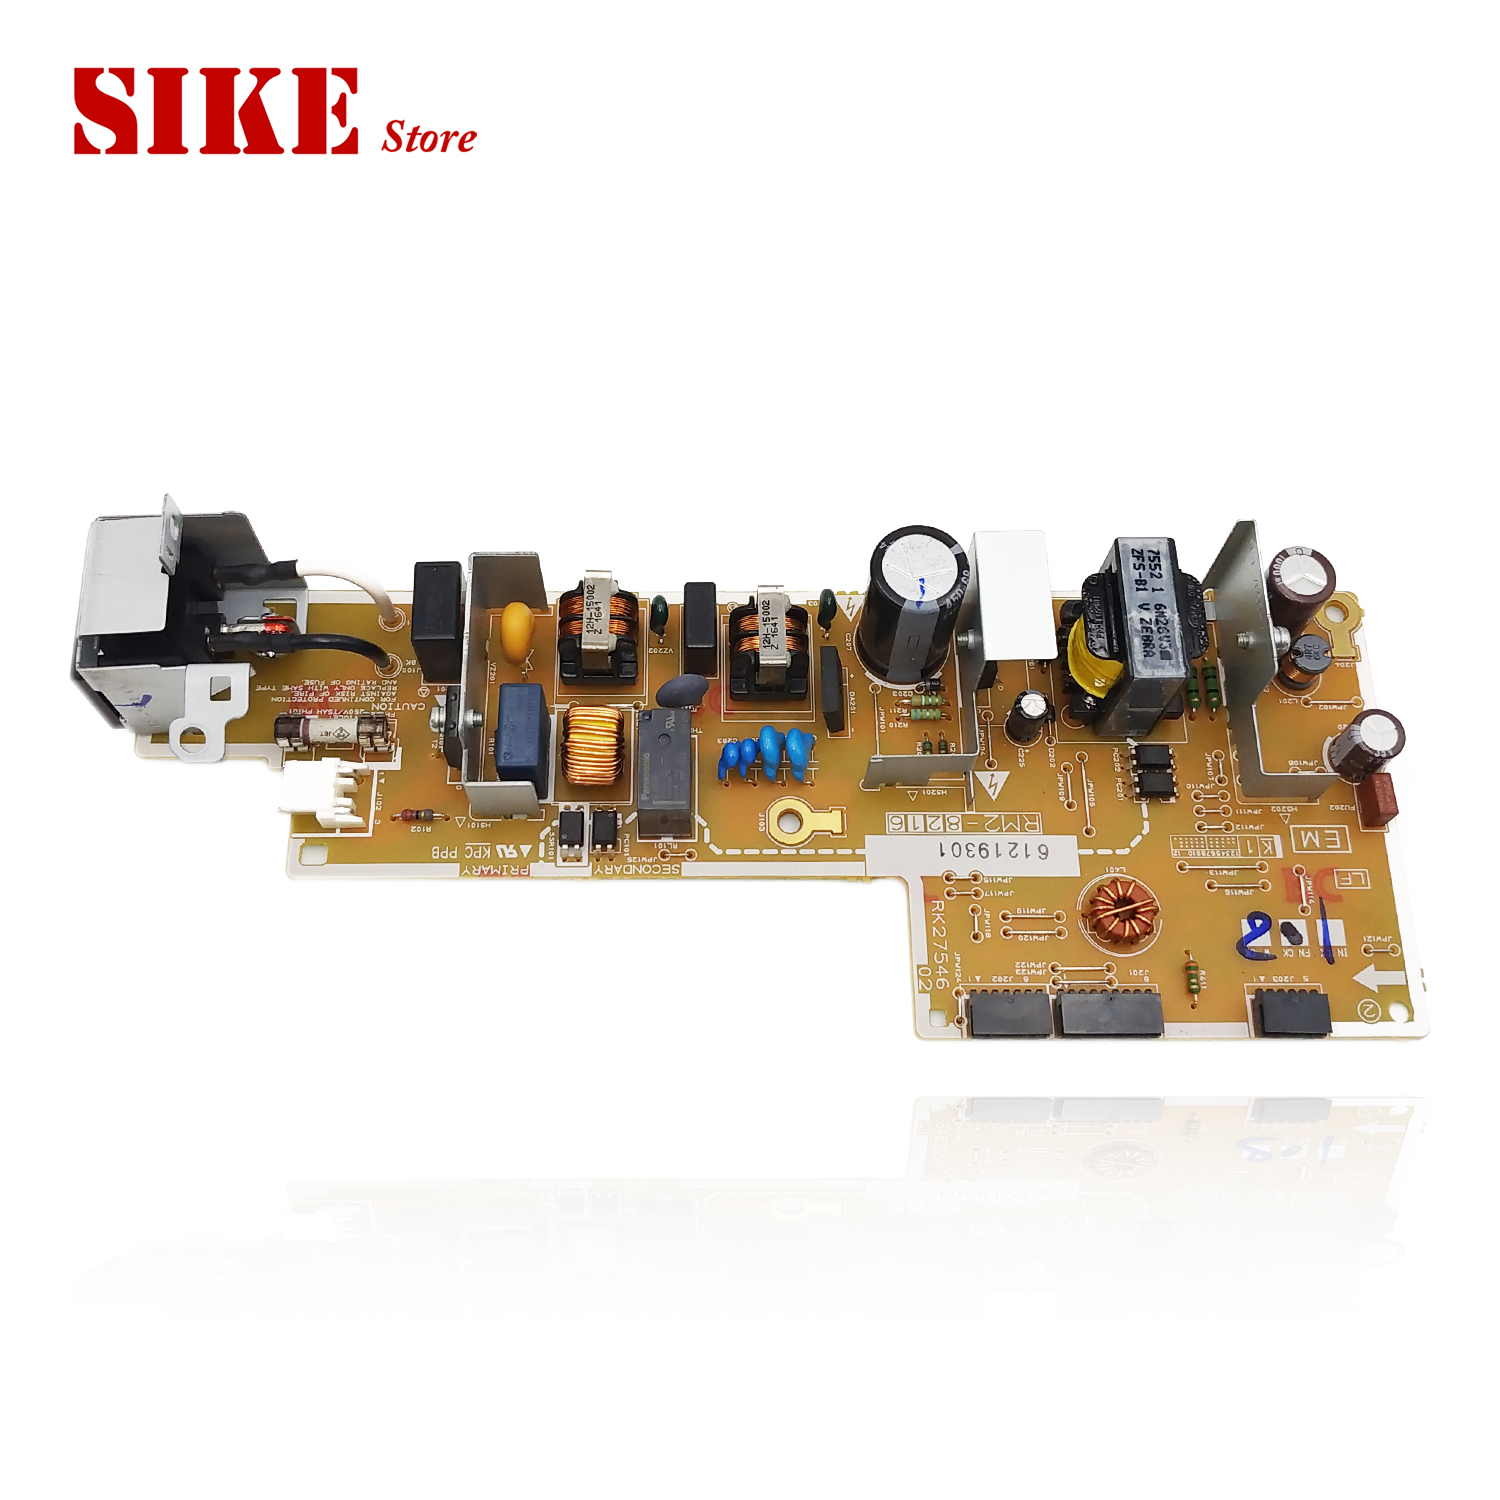 Engine Control Power For HP M130 M132 M134 130 132 134 M130nw M132nw M134a M132a Voltage